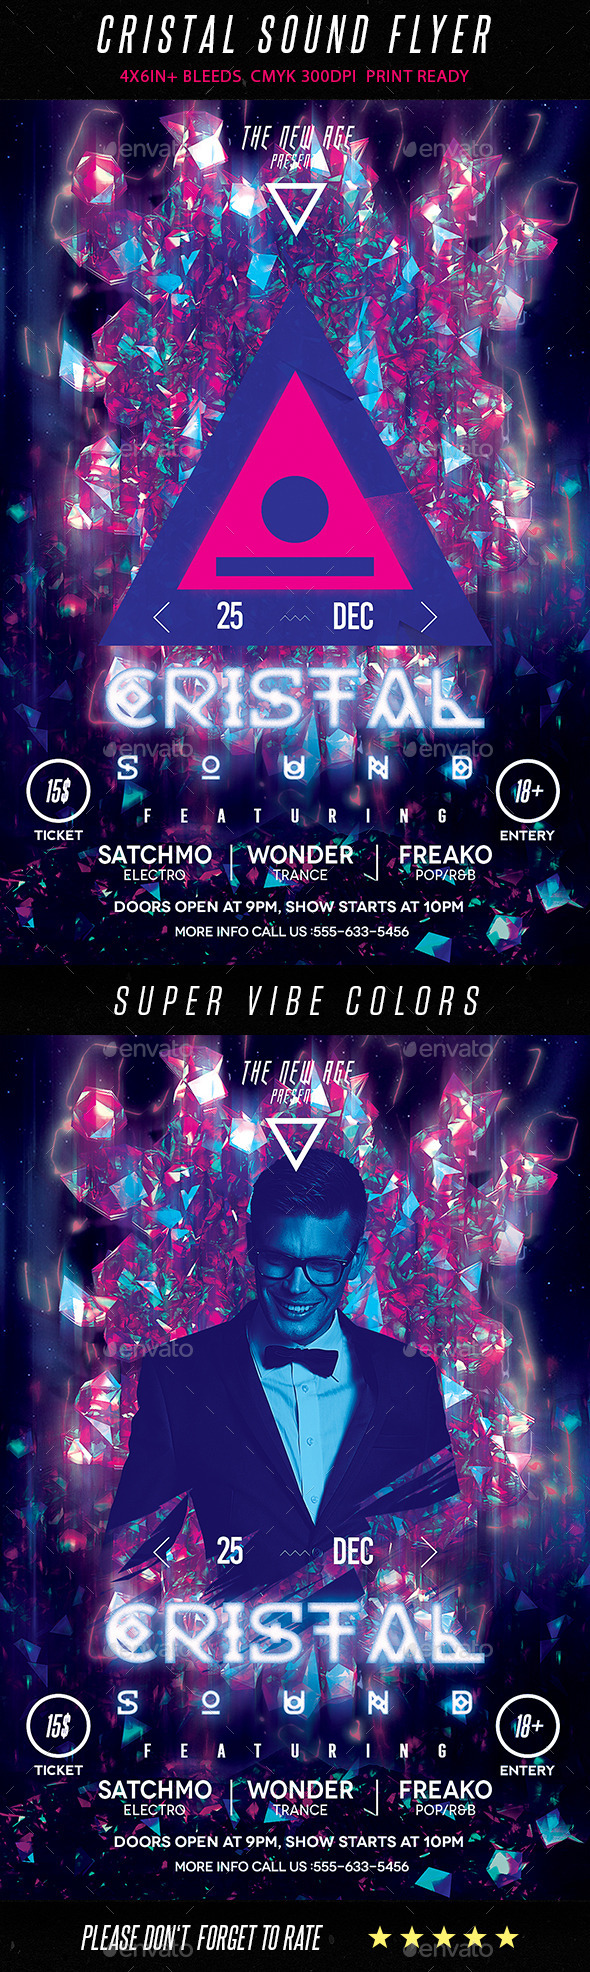 GraphicRiver Cristal Sound Flyer 9588022